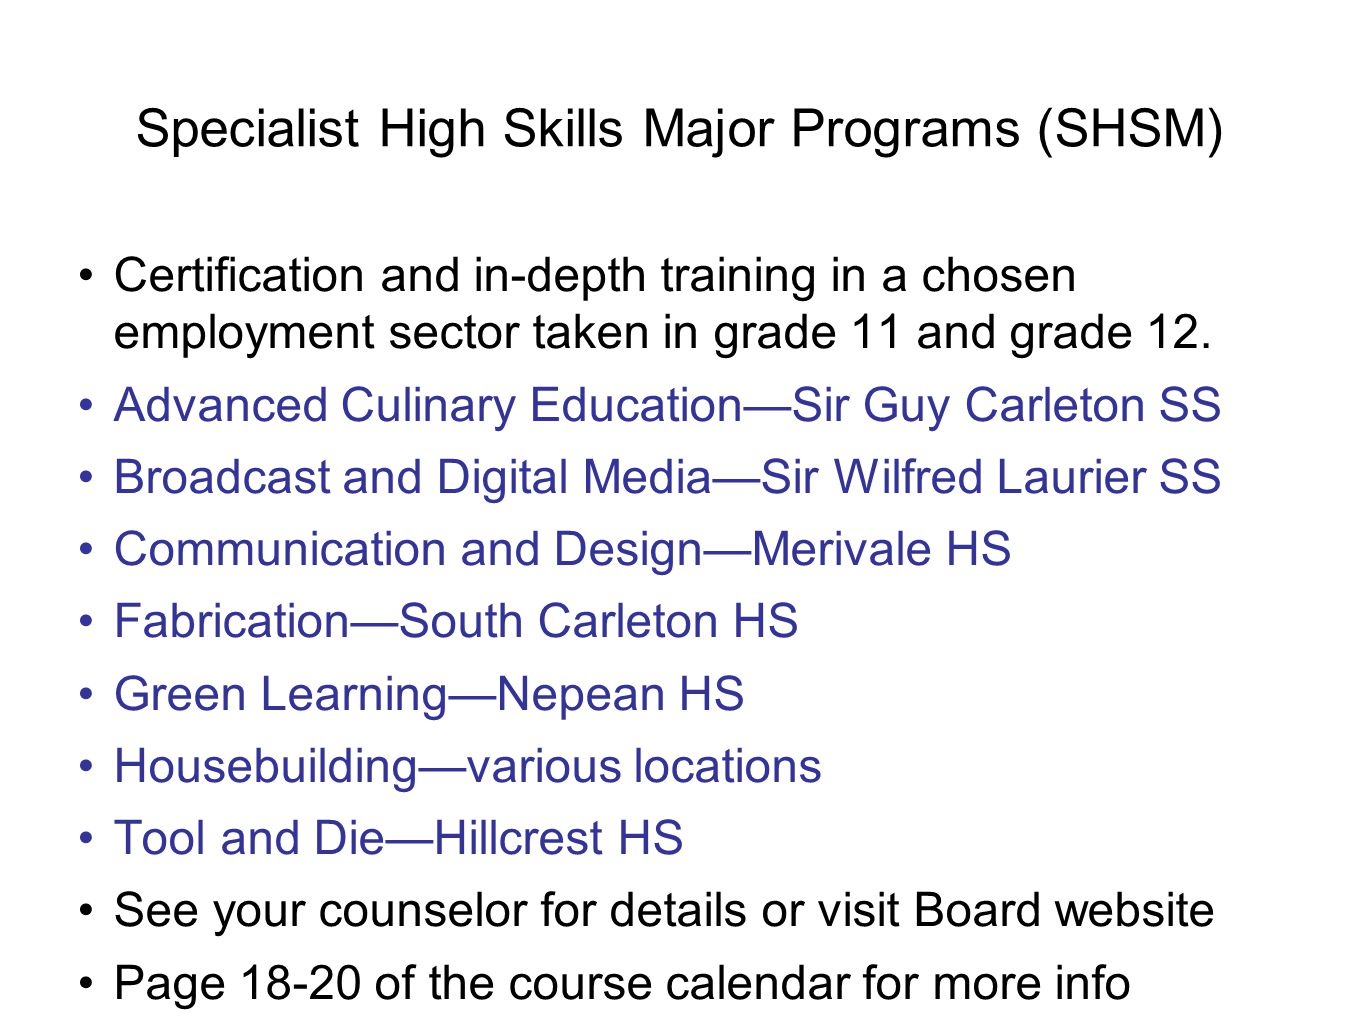 Specialist High Skills Major Programs (SHSM) Certification and in-depth training in a chosen employment sector taken in grade 11 and grade 12.